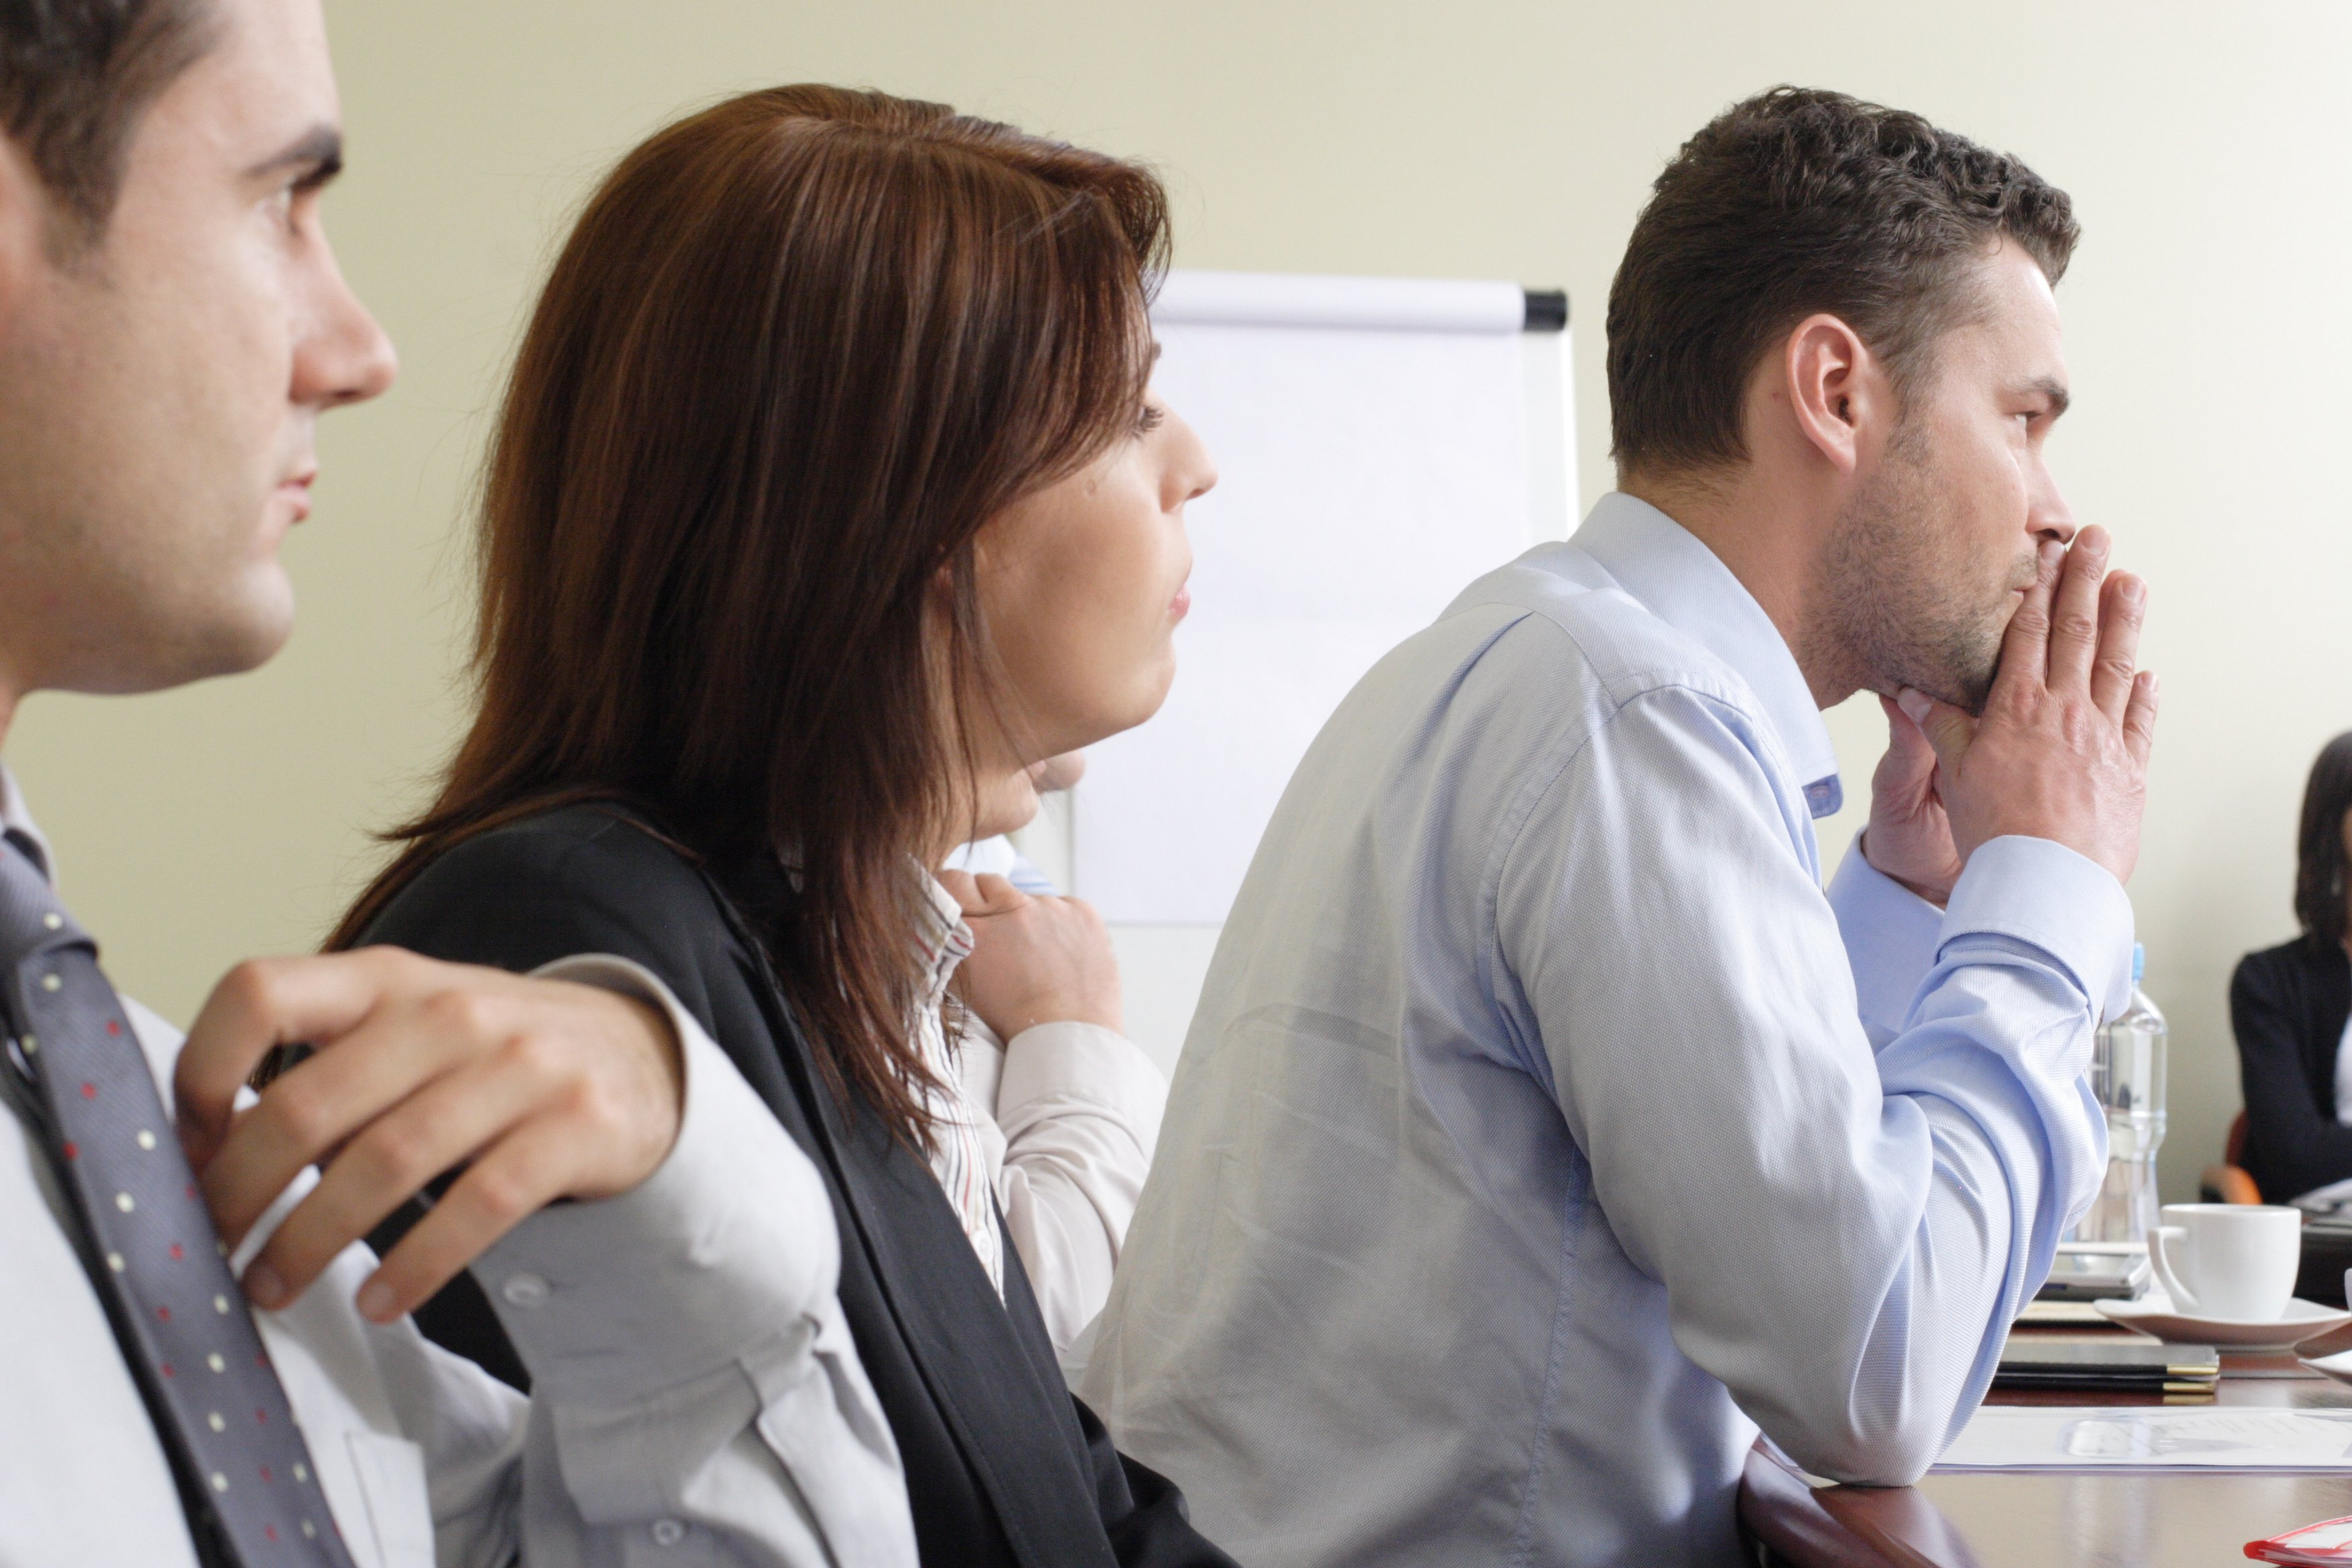 People in a mediation session